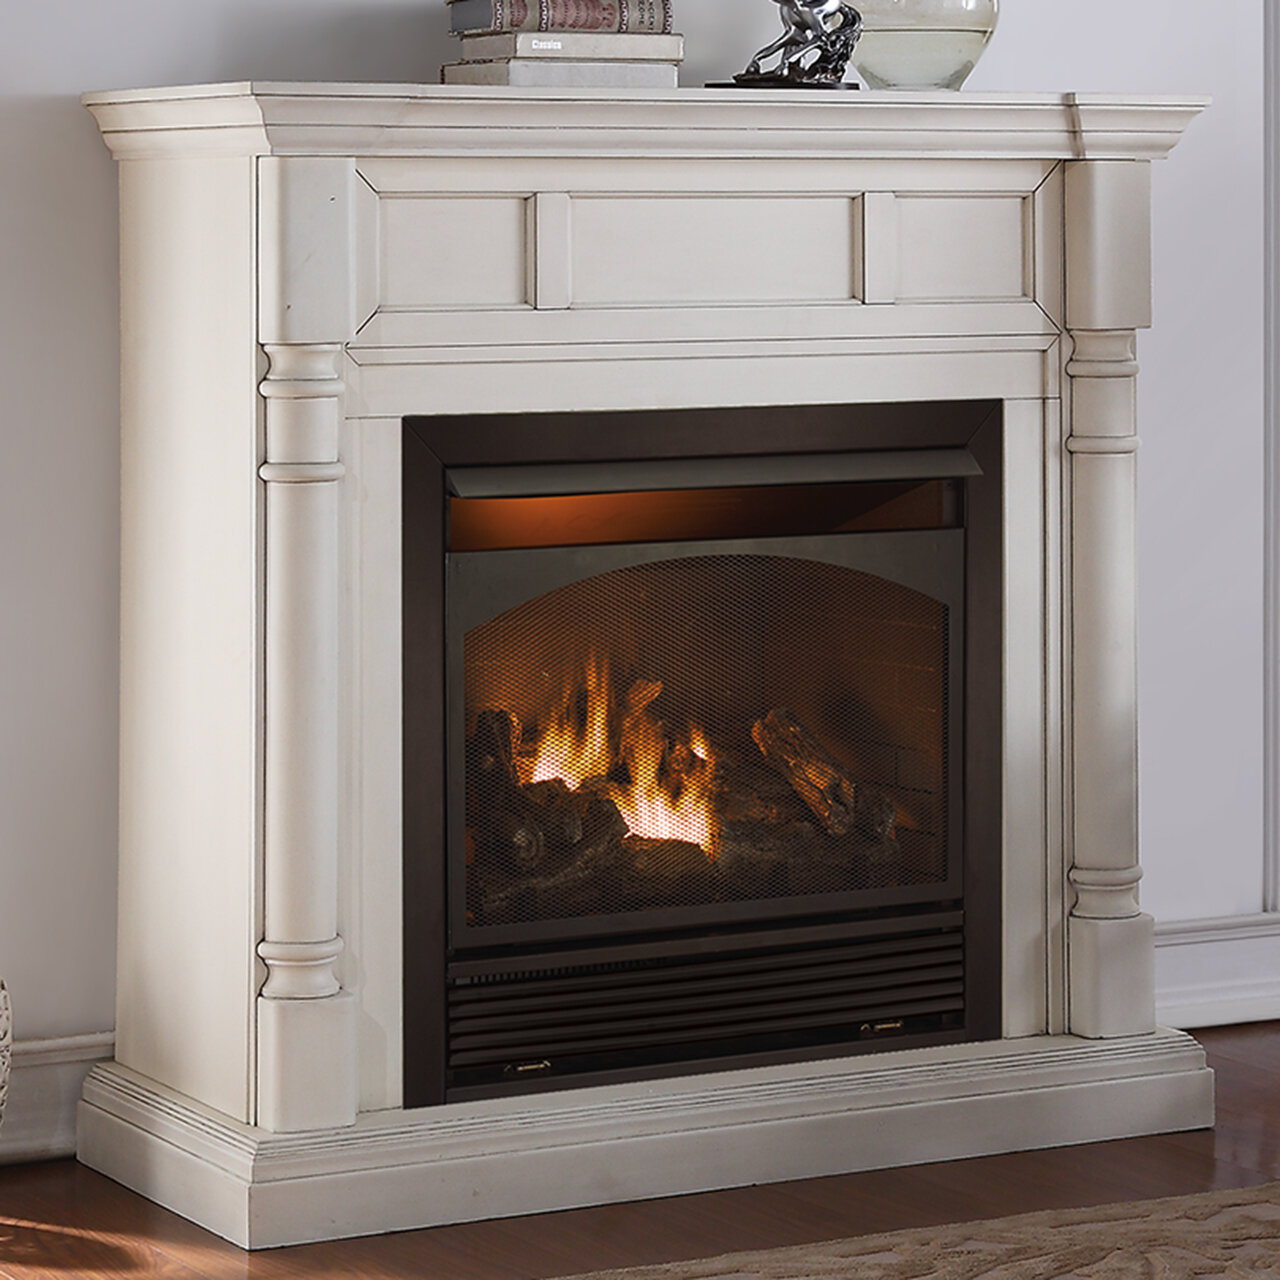 Duluth Forge Vent Free Natural Gas Propane Fireplace Wayfair